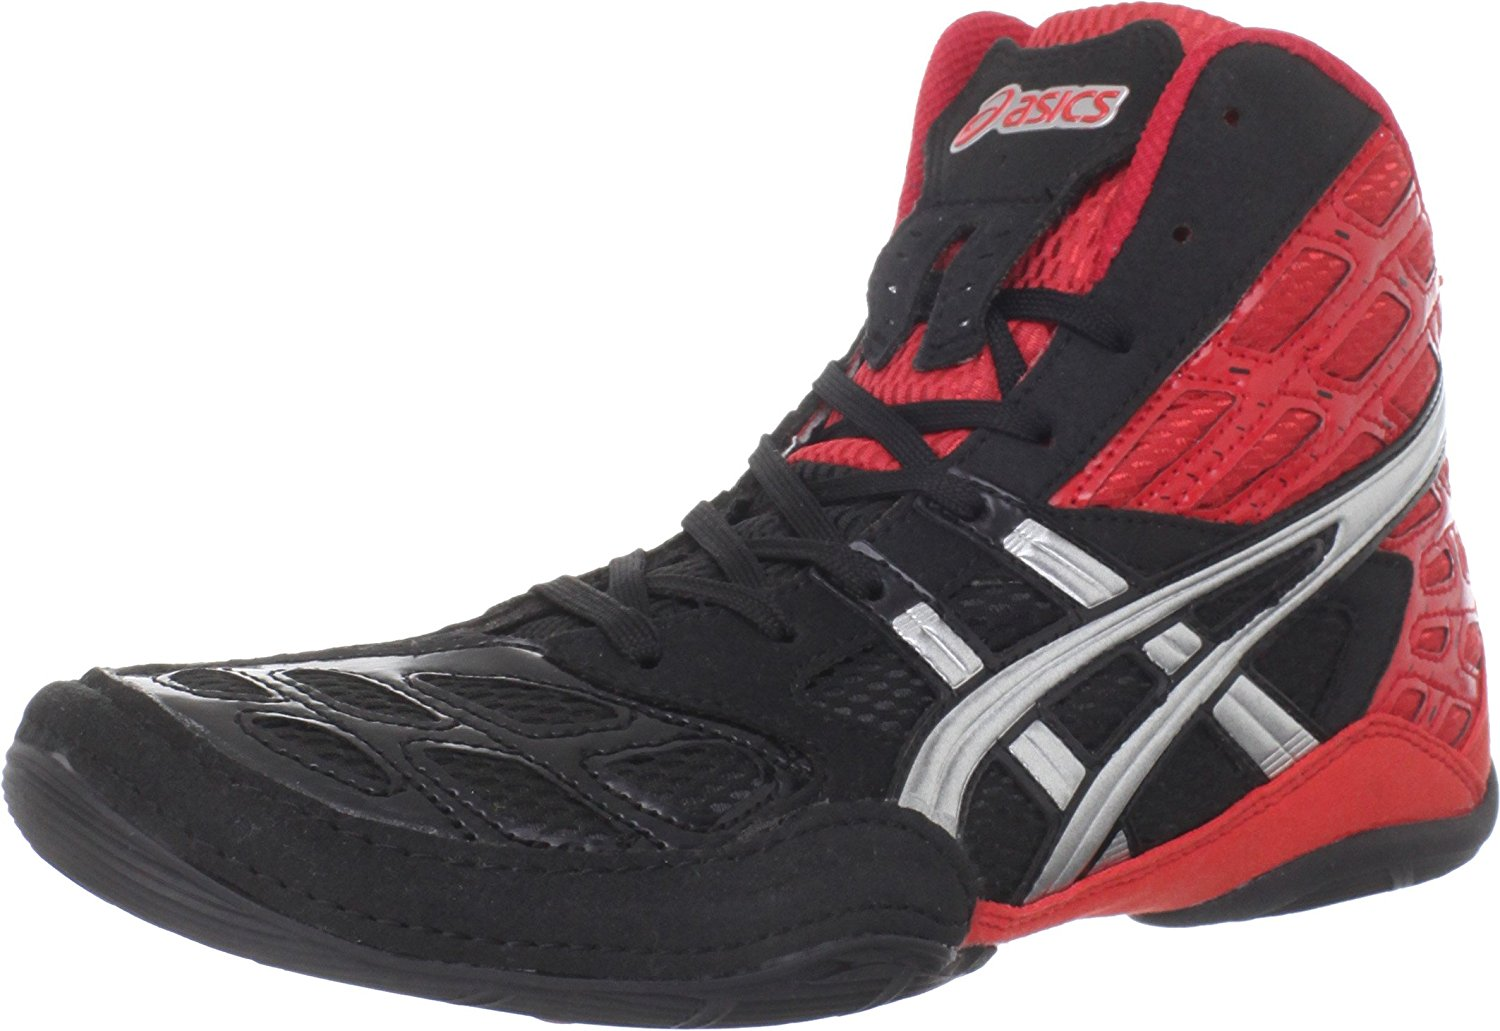 red and black asics wrestling shoes